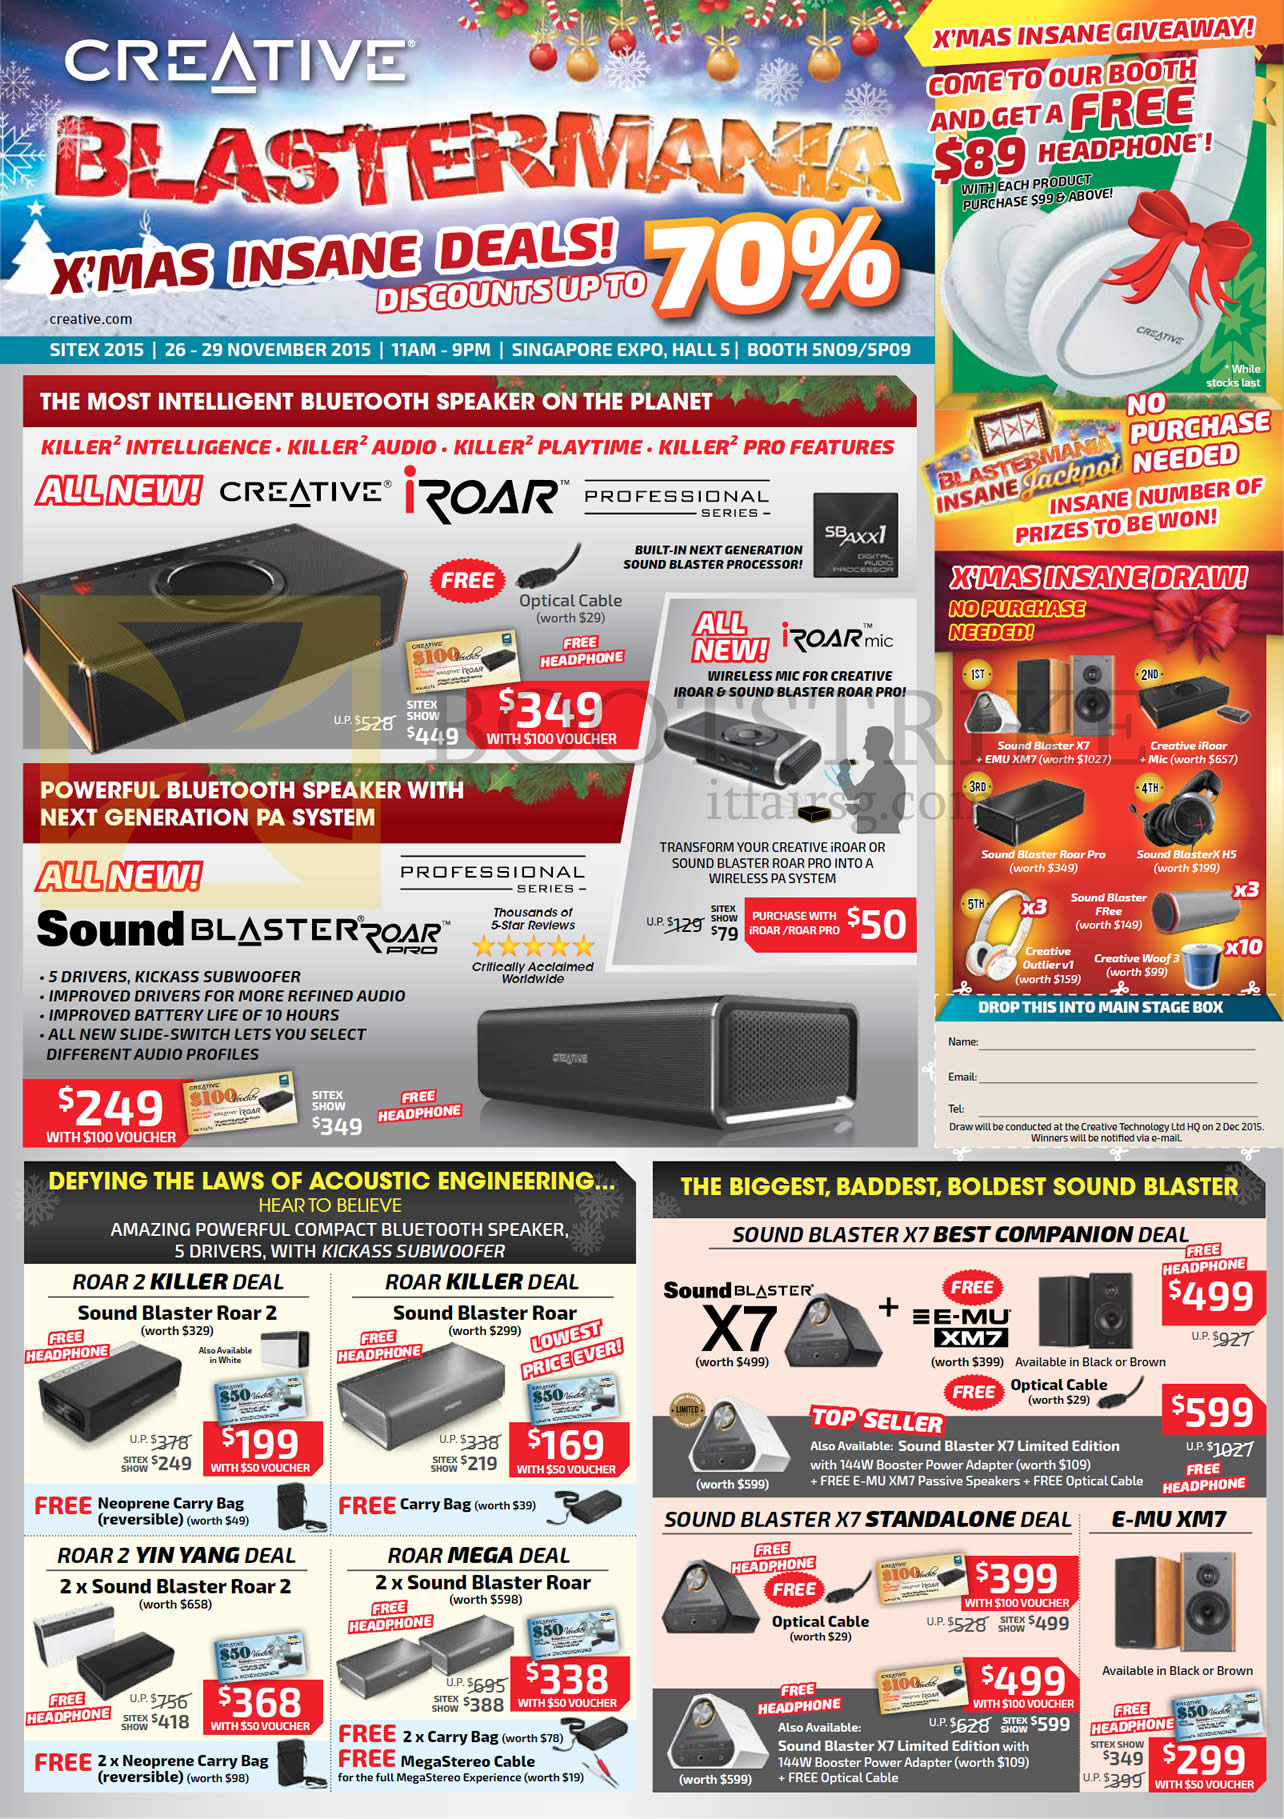 SITEX 2015 price list image brochure of Creative Speakers, Sound Blaster Roar, Roar Pro, IRoar, IRoar Mic, X7 Standalone Deal